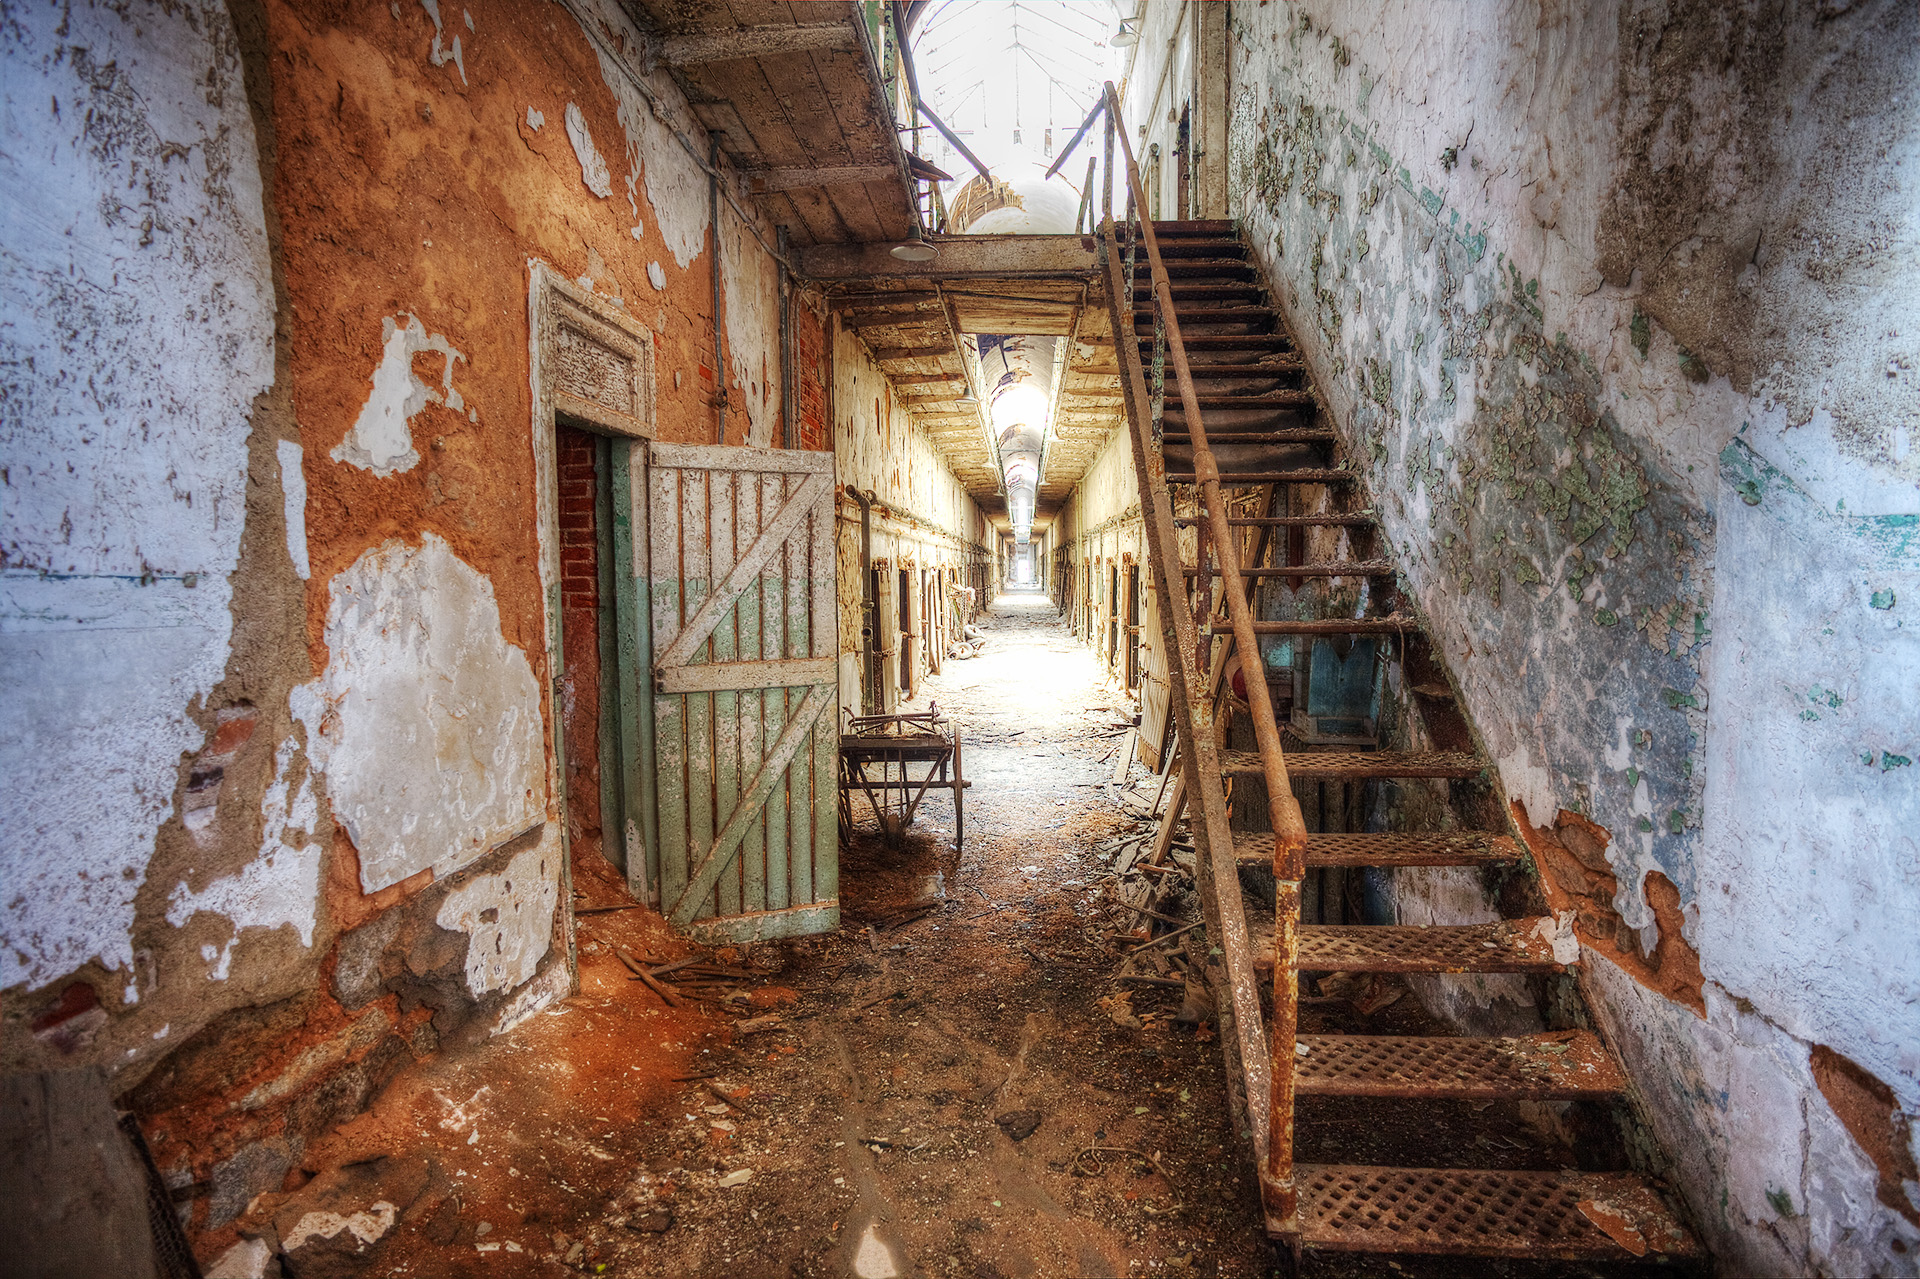 Cell block, Eastern State Penitentiary.